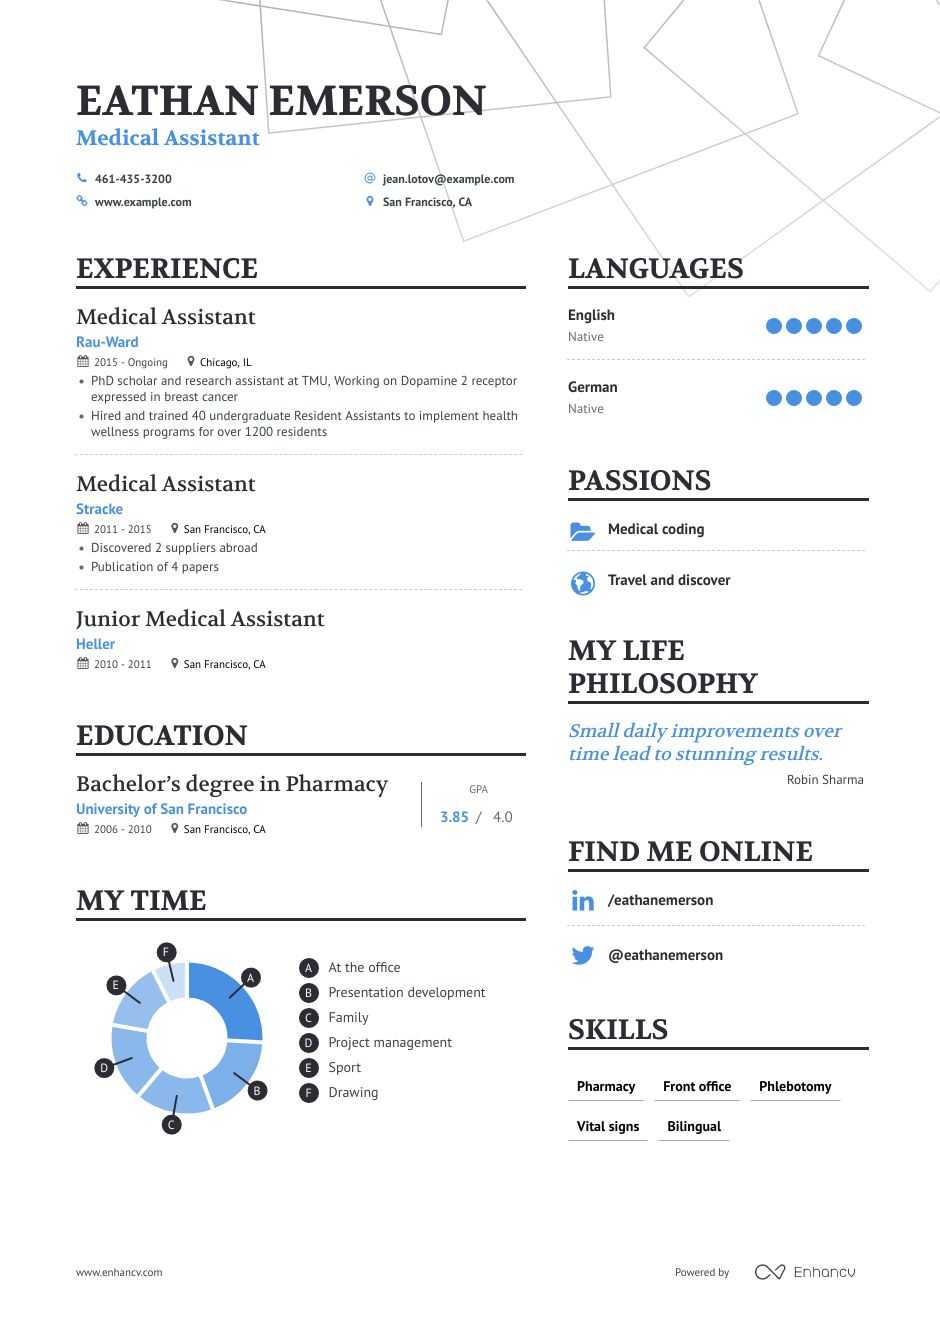 top medical assistant resume examples samples for enhancv summary transition senior Resume Medical Assistant Resume Summary